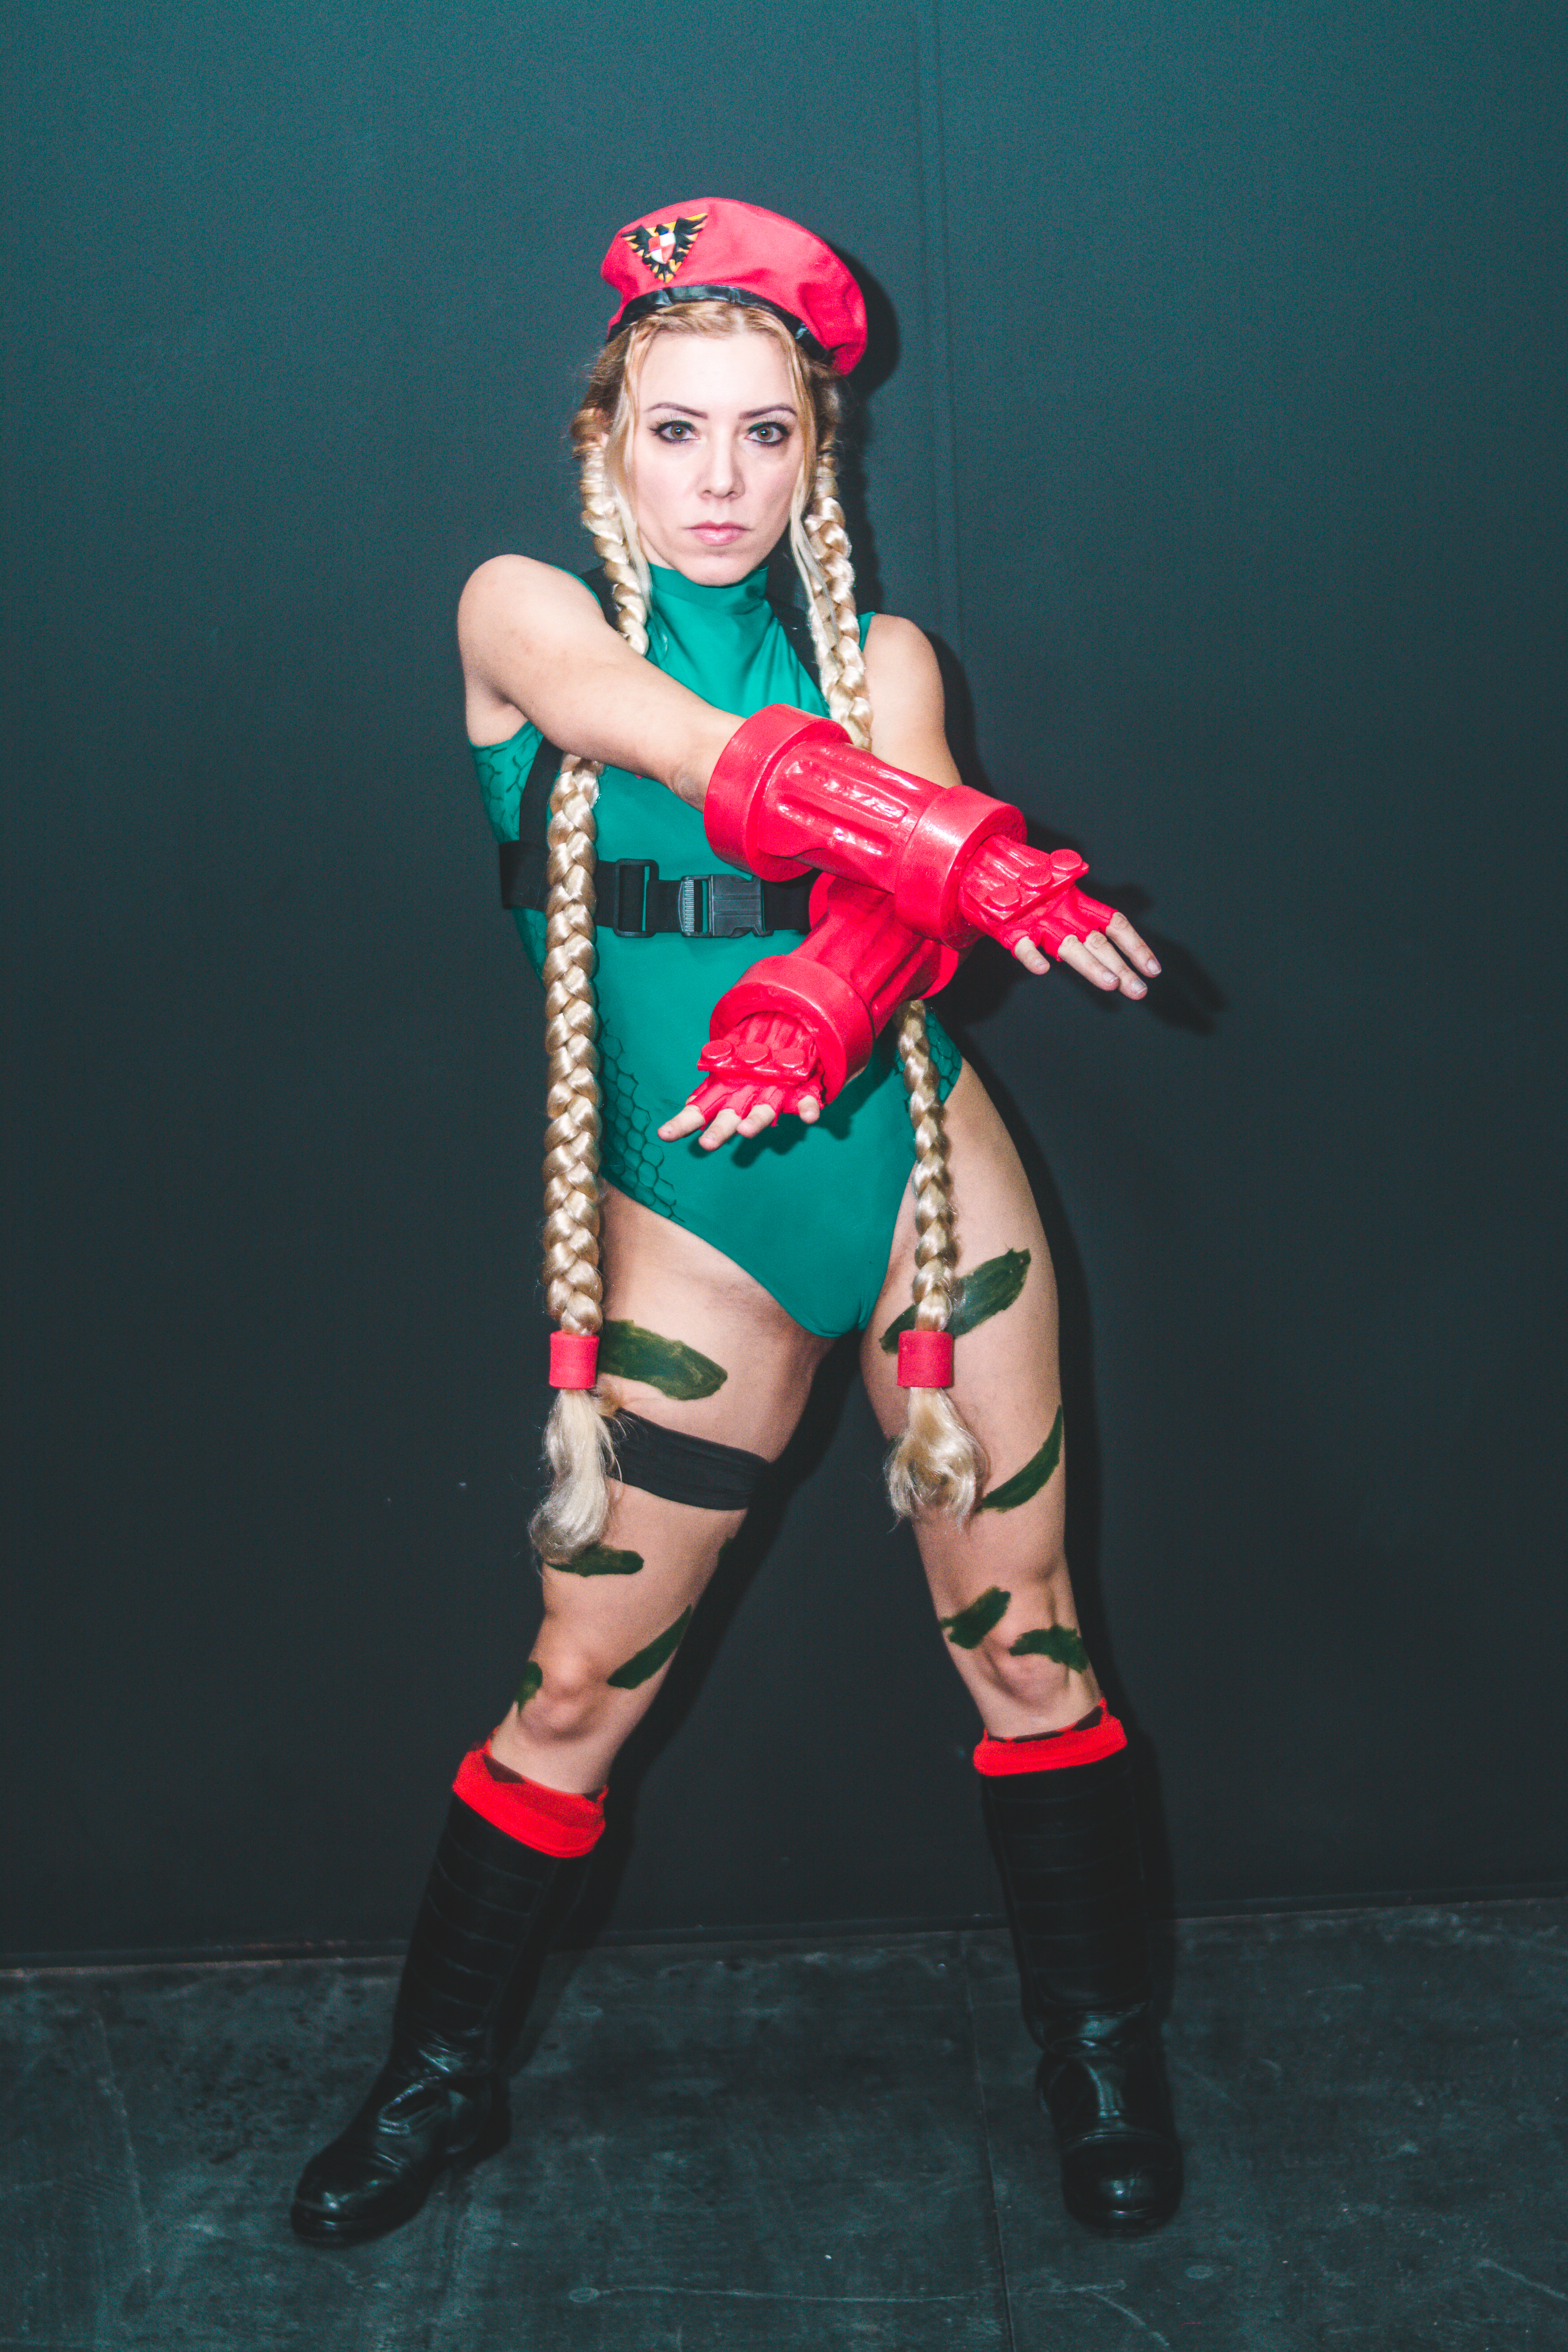 Woman Wearing Street Fighter Character Cosplay Outfit